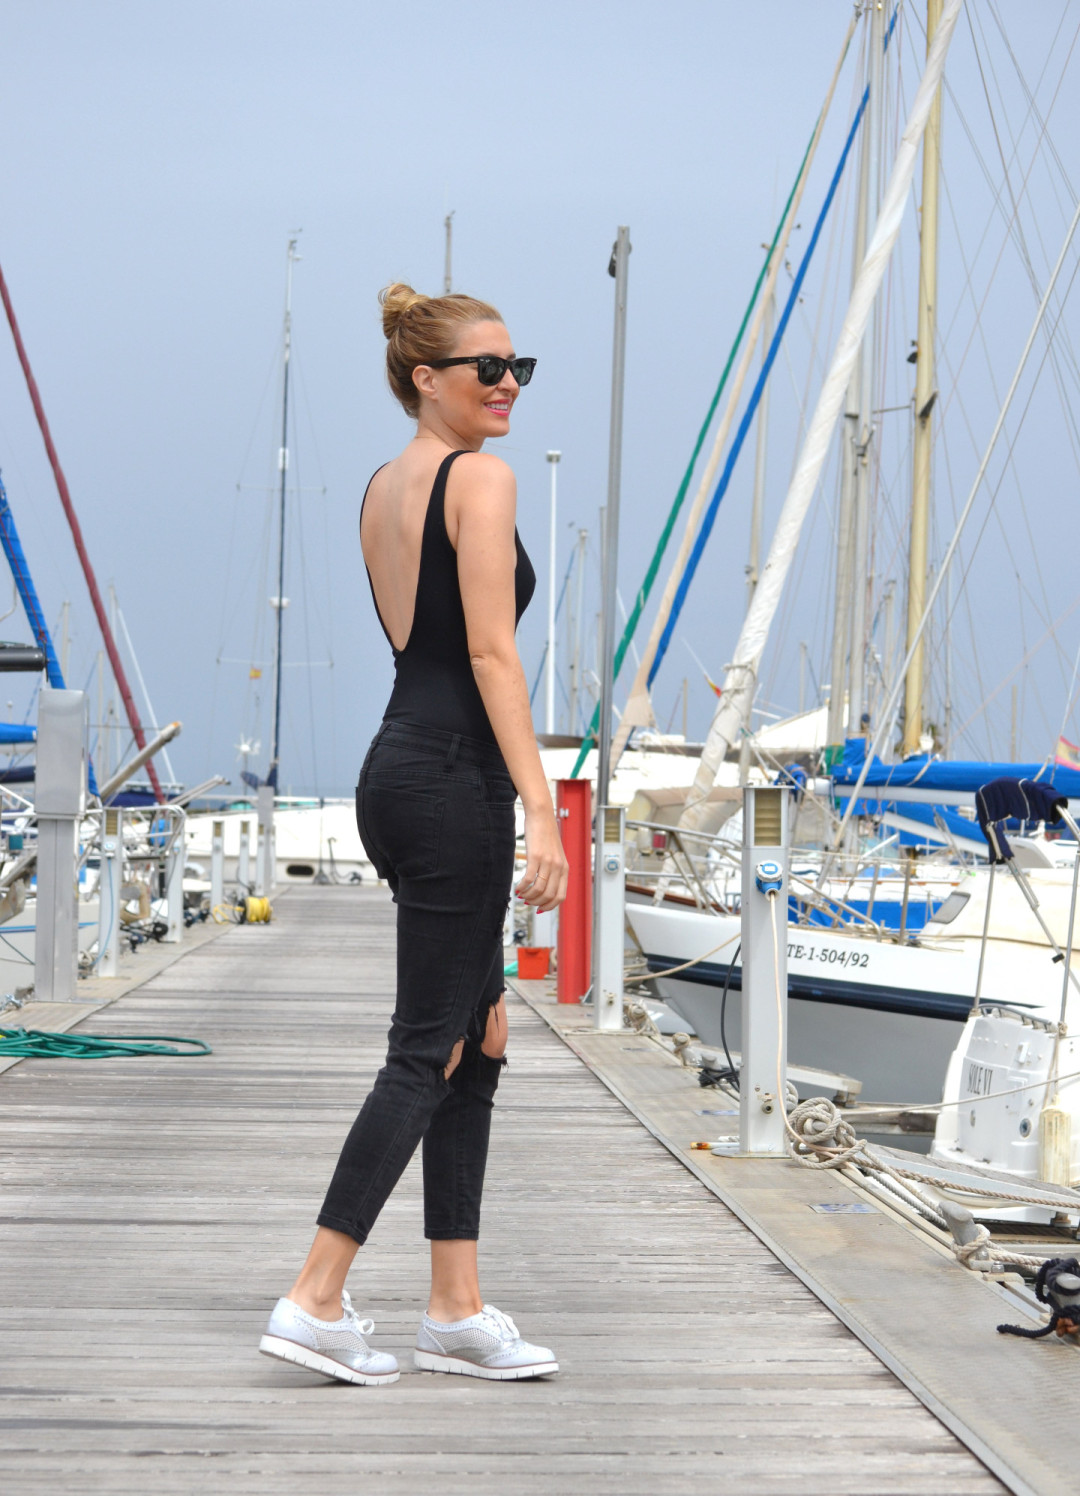 Total_Black_White_Shoes_Ray_Ban_Wayfarer_Port_Lara_Martin_Gilarranz_Bymyheels (5)